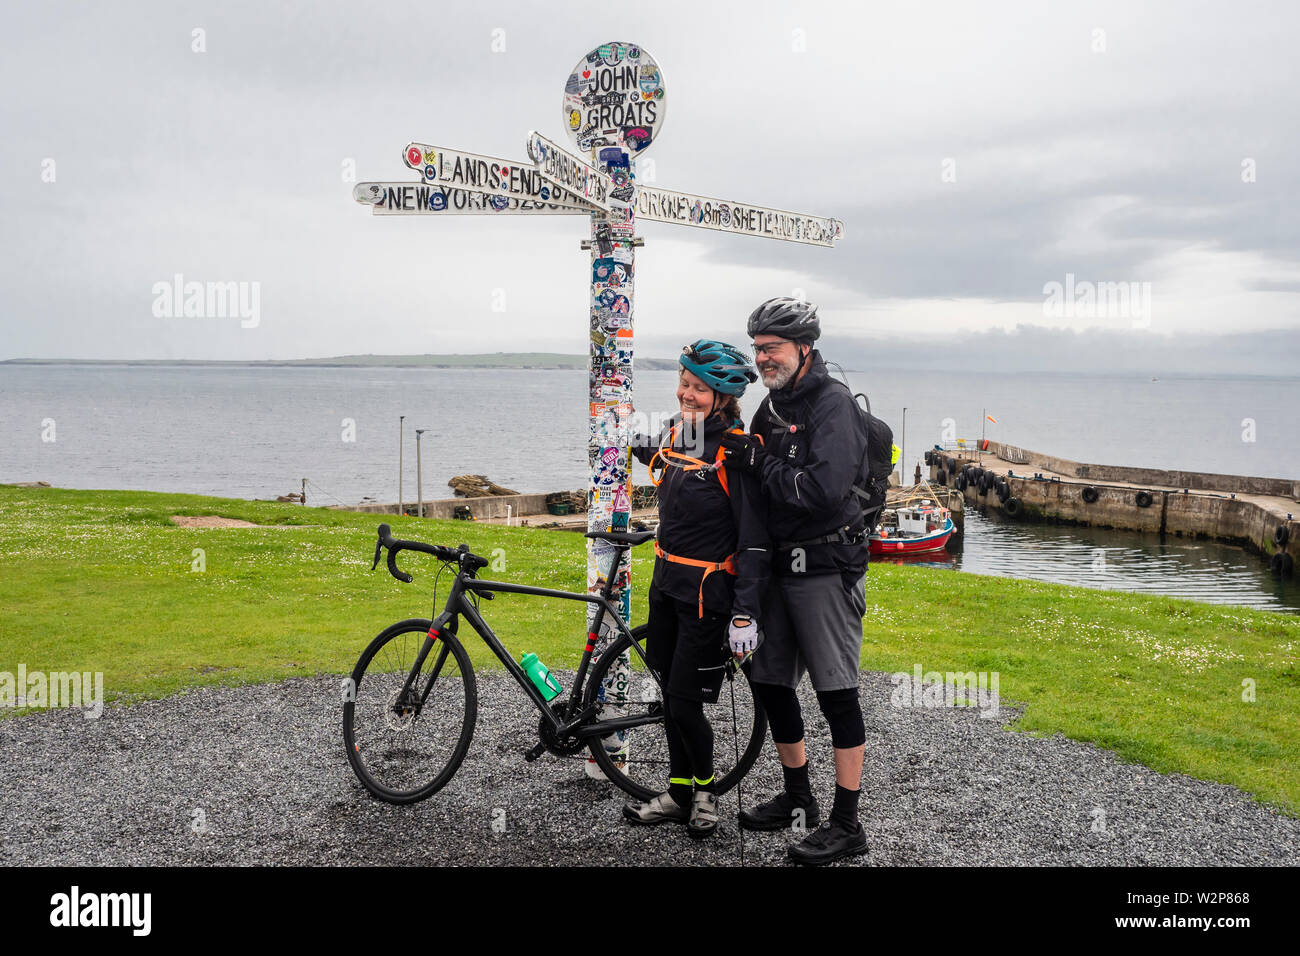 John o' Groats is a village 2.5 miles NE of the village of Canisbay, Caithness, in the far north of Scotland. Stock Photo